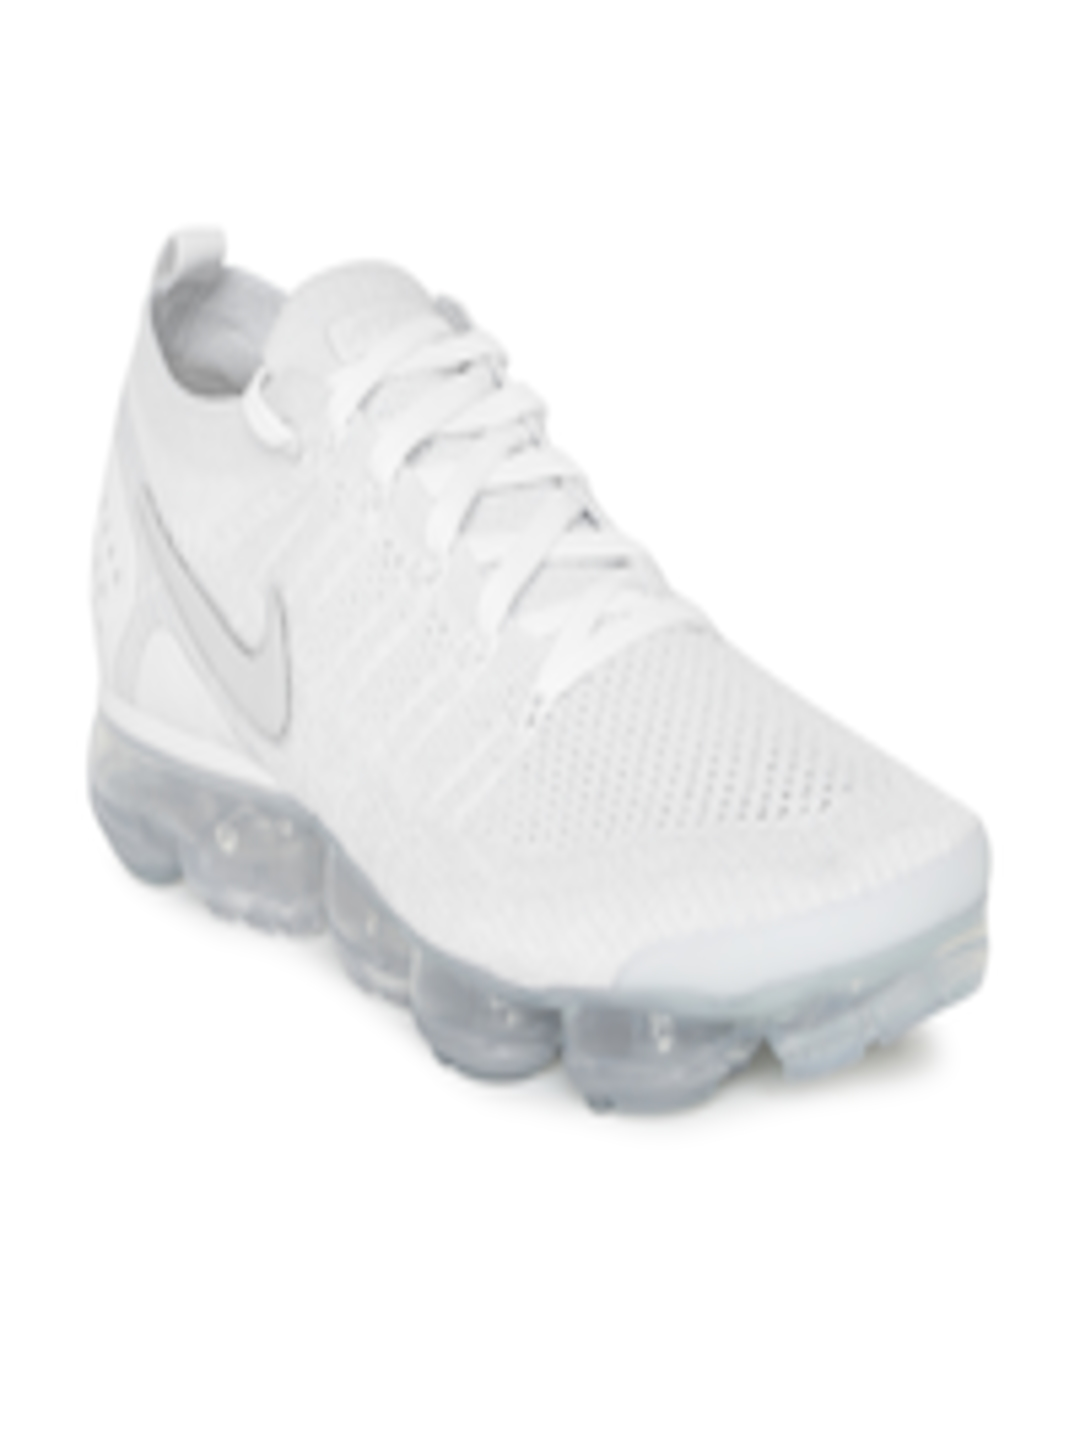 Nike Air VaporMax Flyknit 2 at Rs 19995 pair | Nike Sports